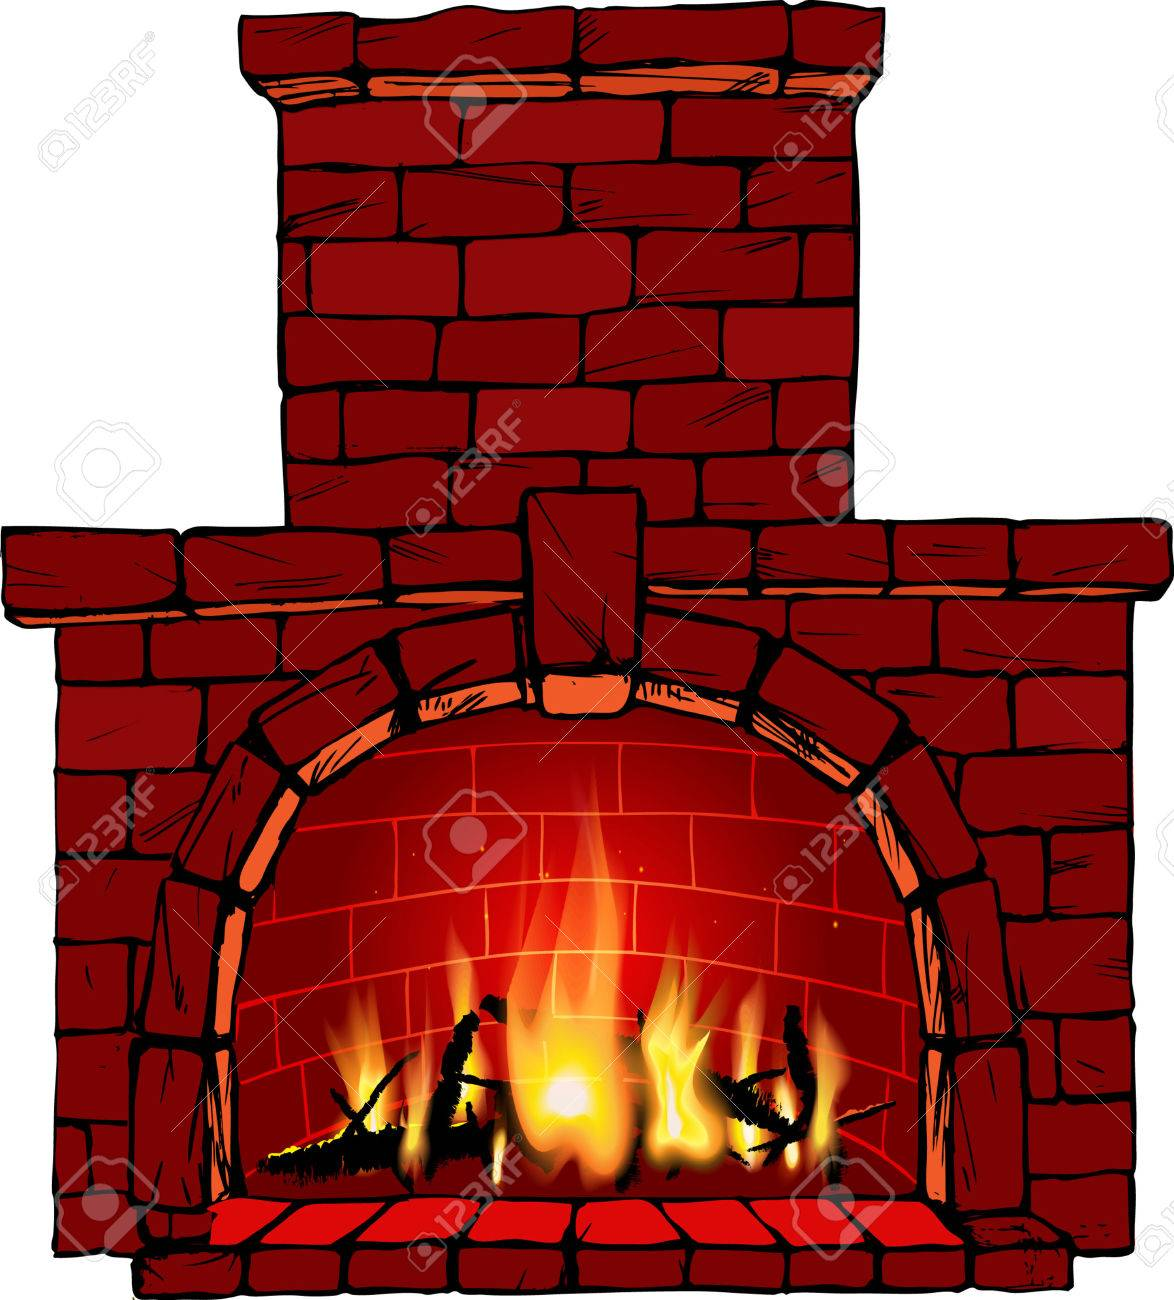 brick fireplace clipart. illustration of fire in fireplace stock vector 23039542 brick clipart n